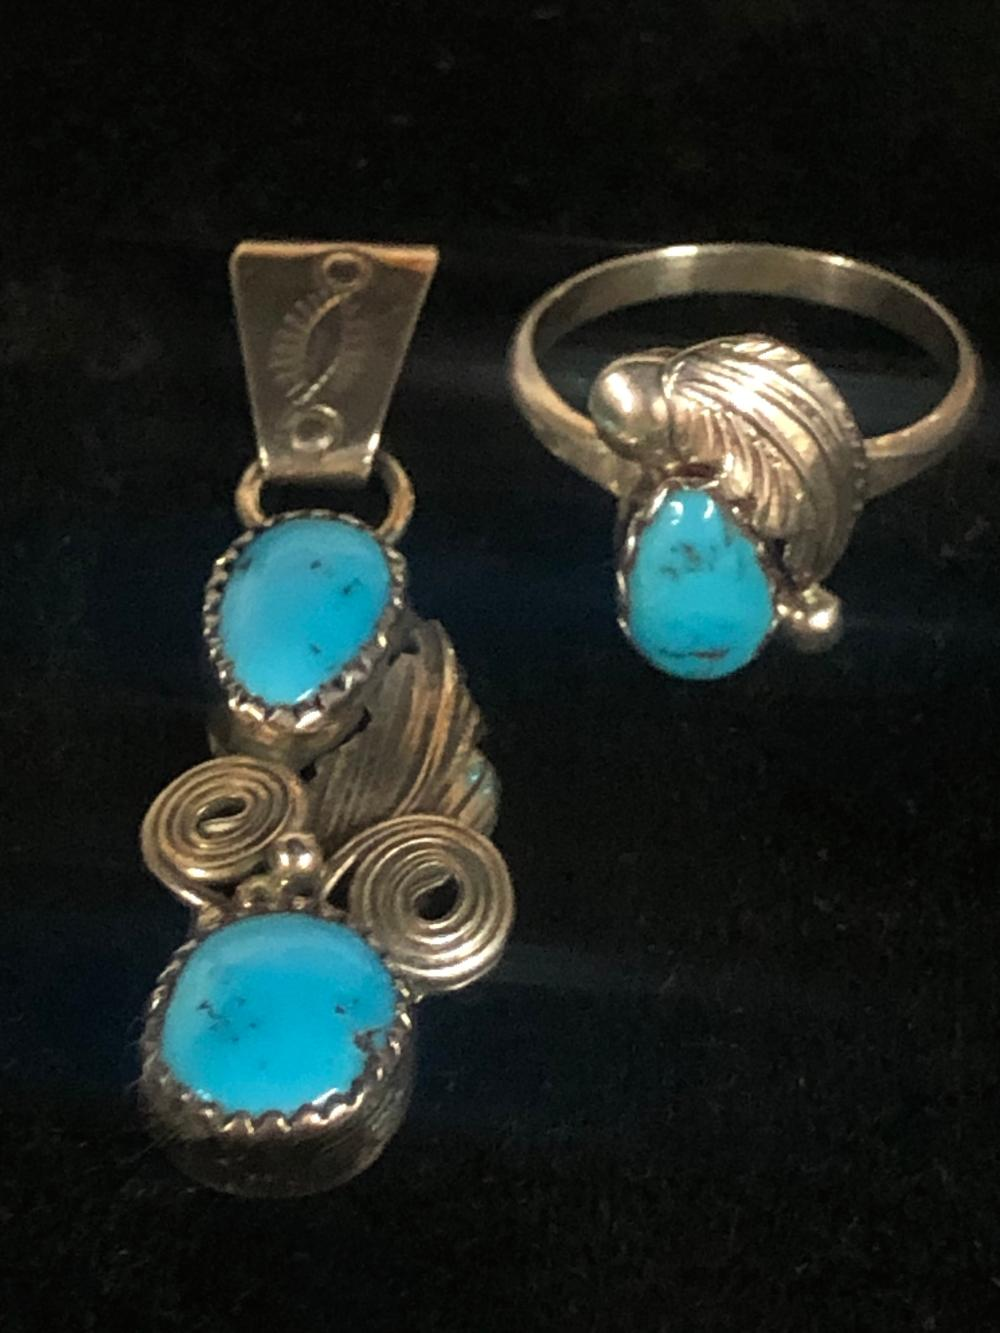 Turquoise ring and pendant 'set'